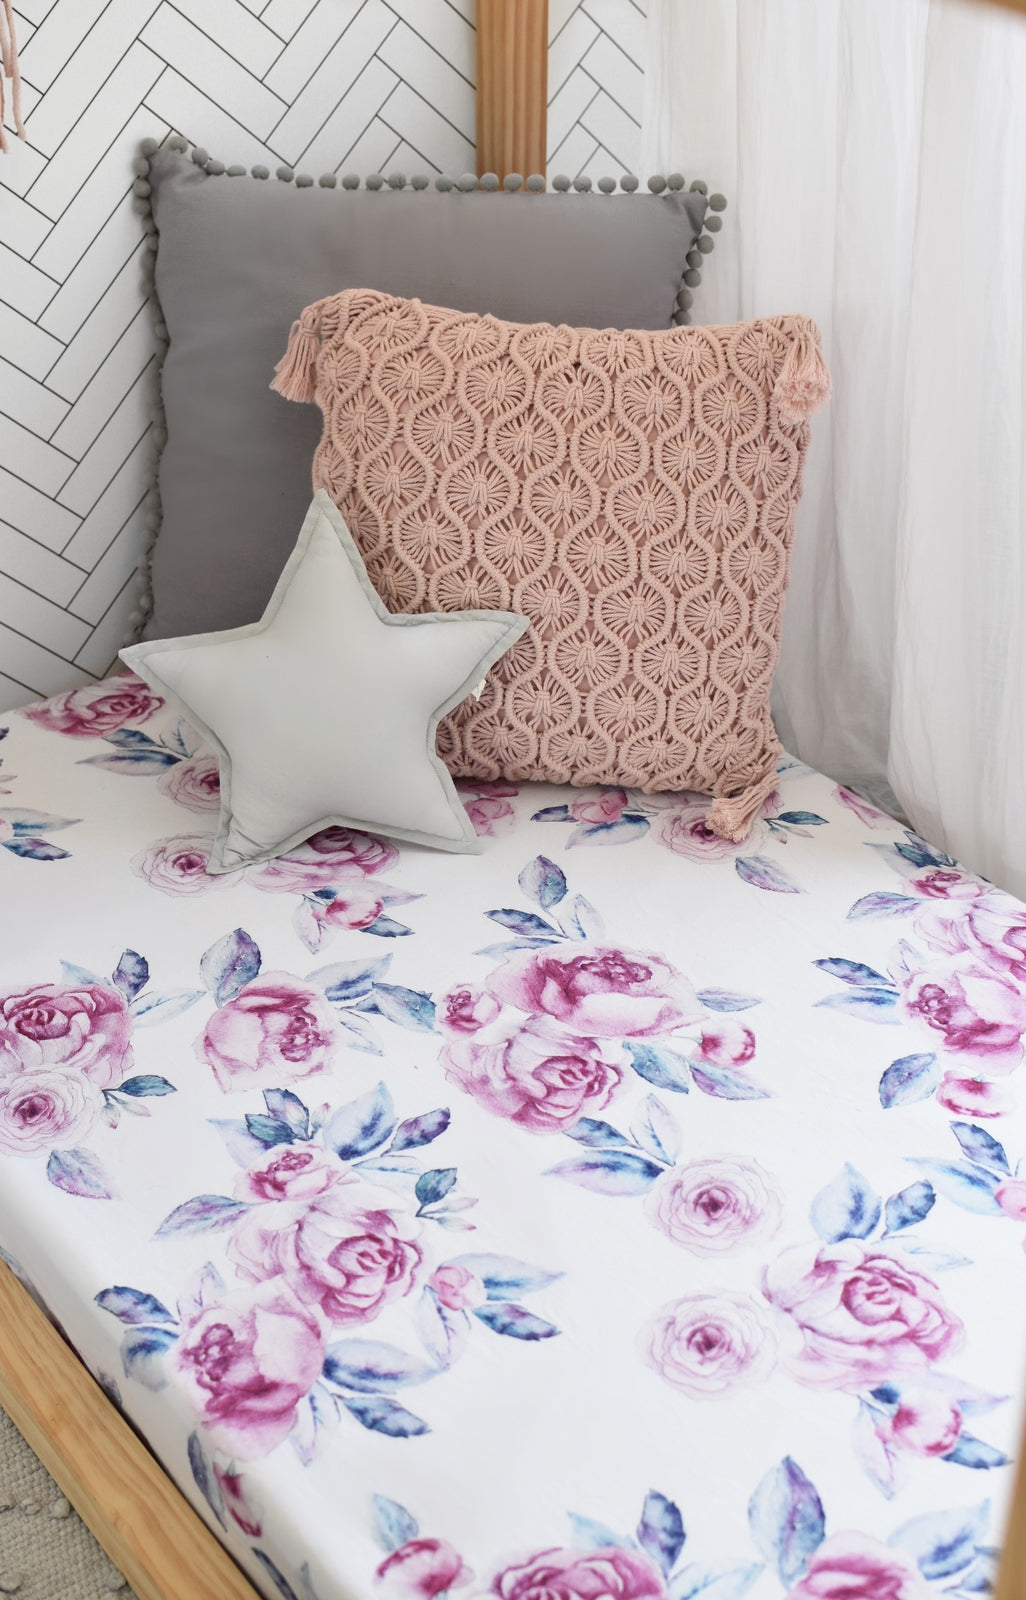 Snuggle Fitted Cot Sheet - Lilac Skies - Angus & Dudley Collections